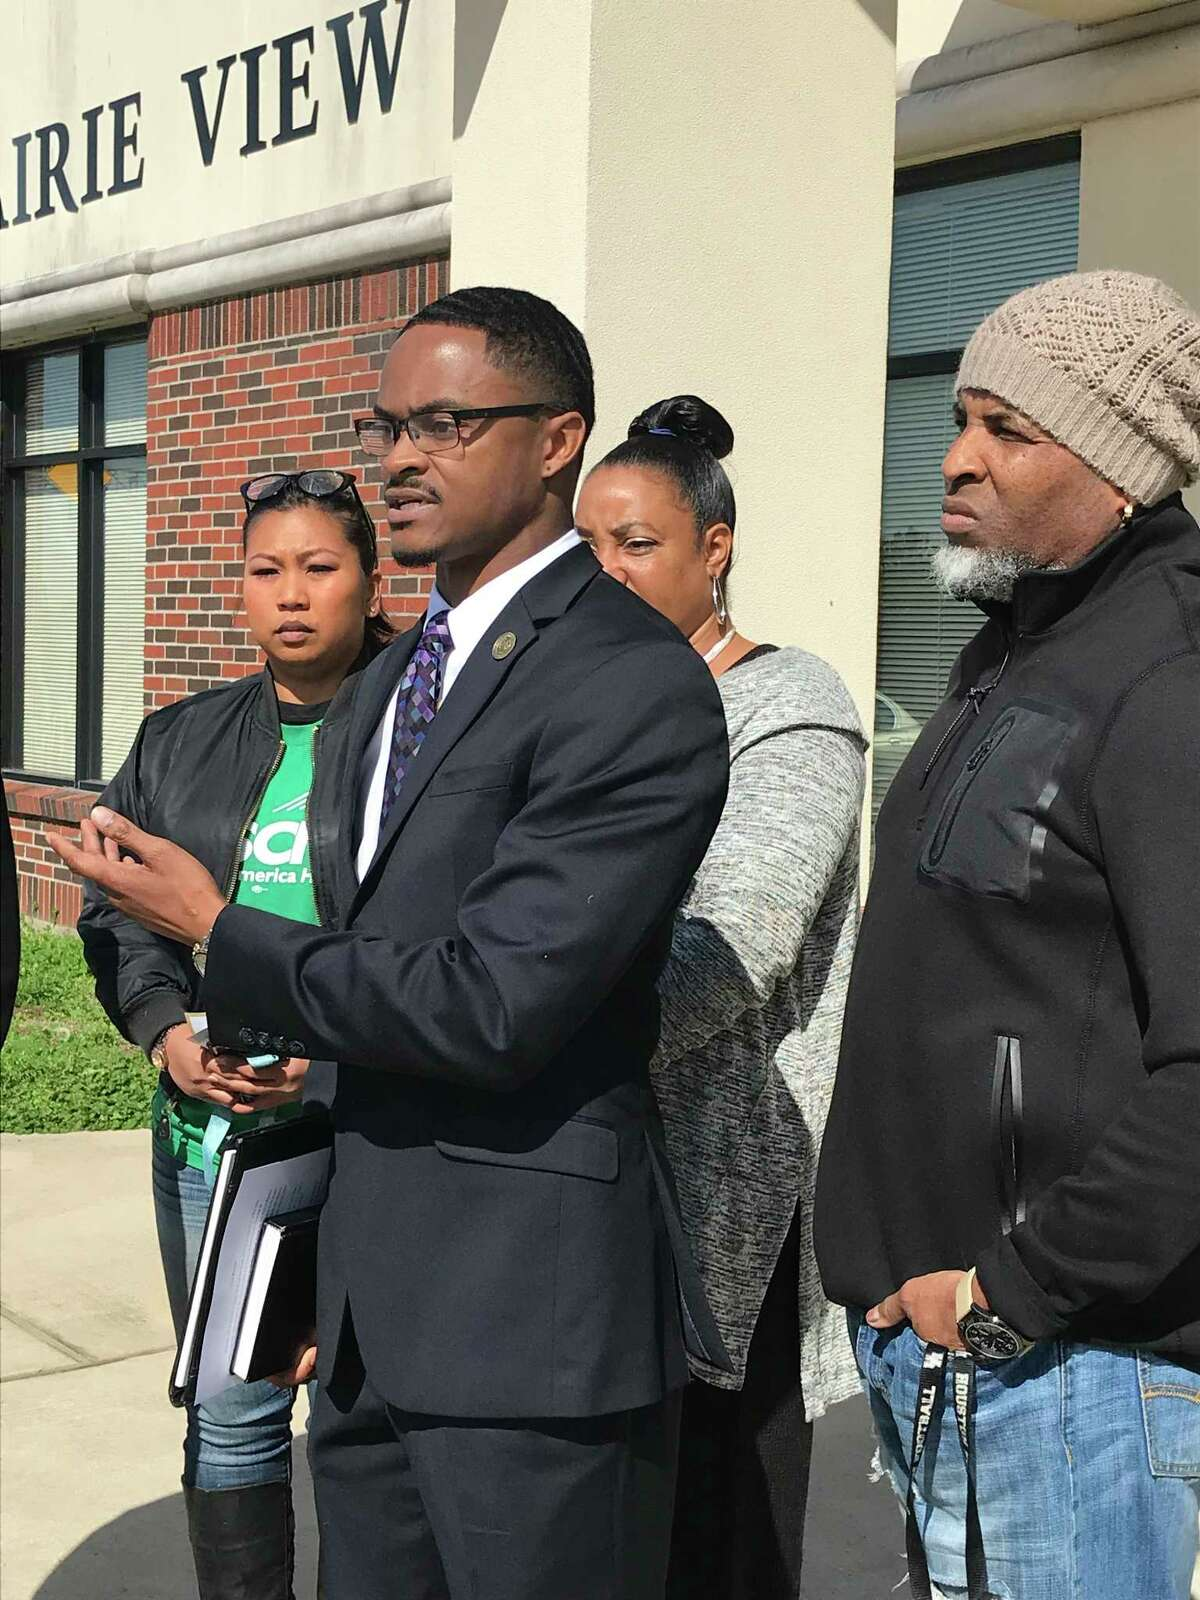 JonathanMiller, flanked by a handful of supporters, speaks out Thursday in front of Prairie View City.Millerprotested the dismissal of the misdemeanor case against the white police officer who arrested and Tased him in 2015.